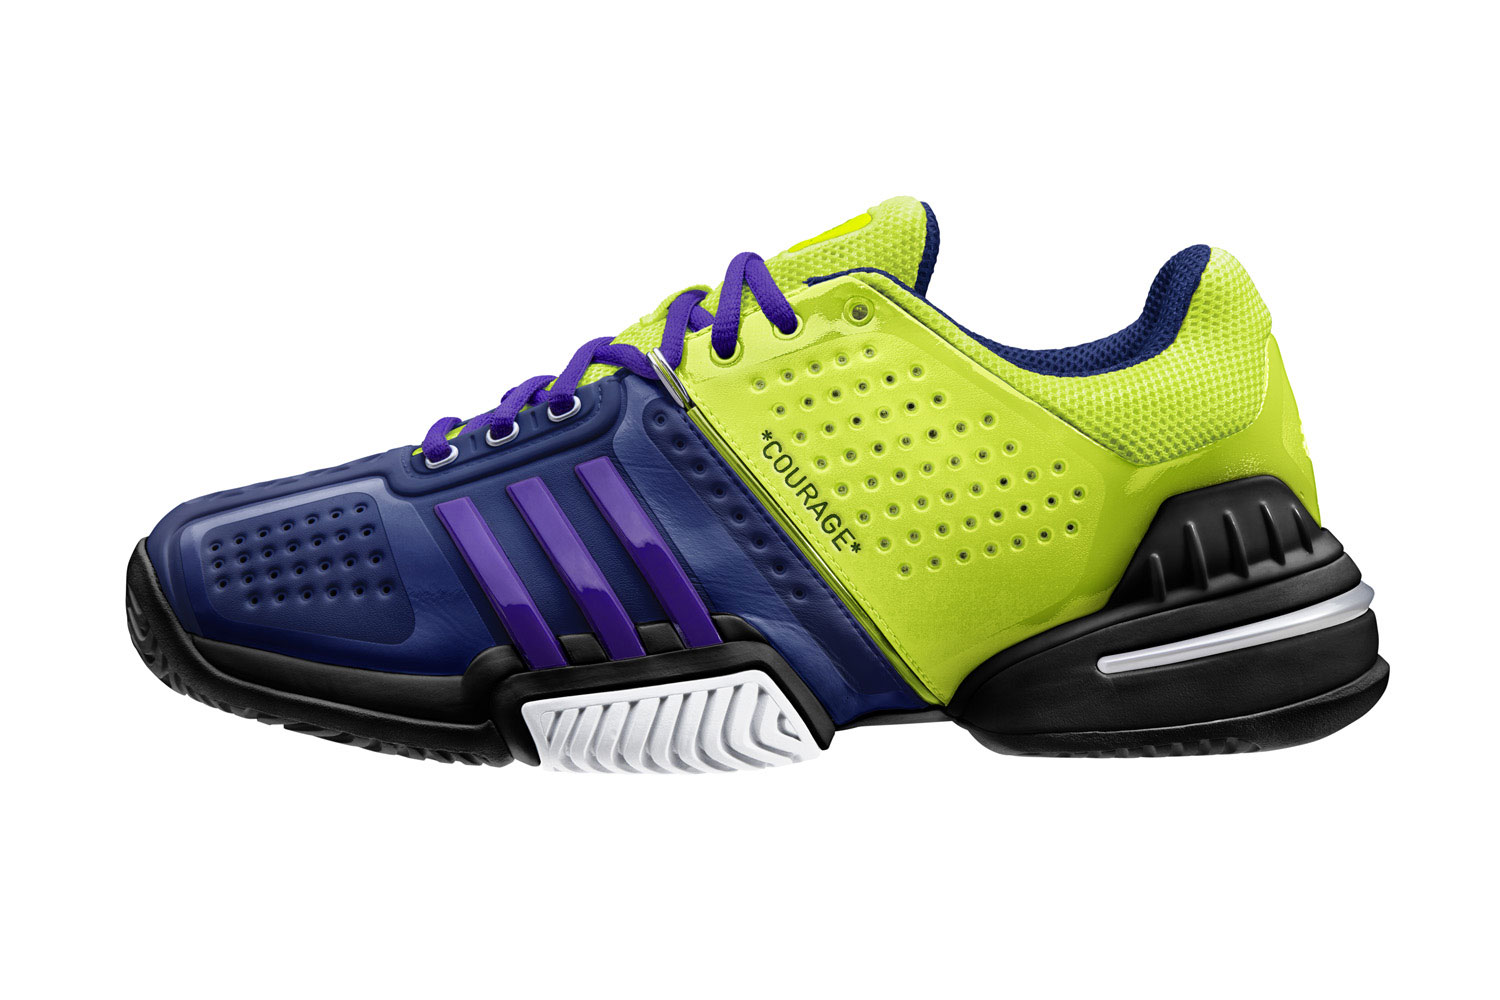 Personalized Adidas mi Barricade 6 Footwear by Melanie Oudin – the